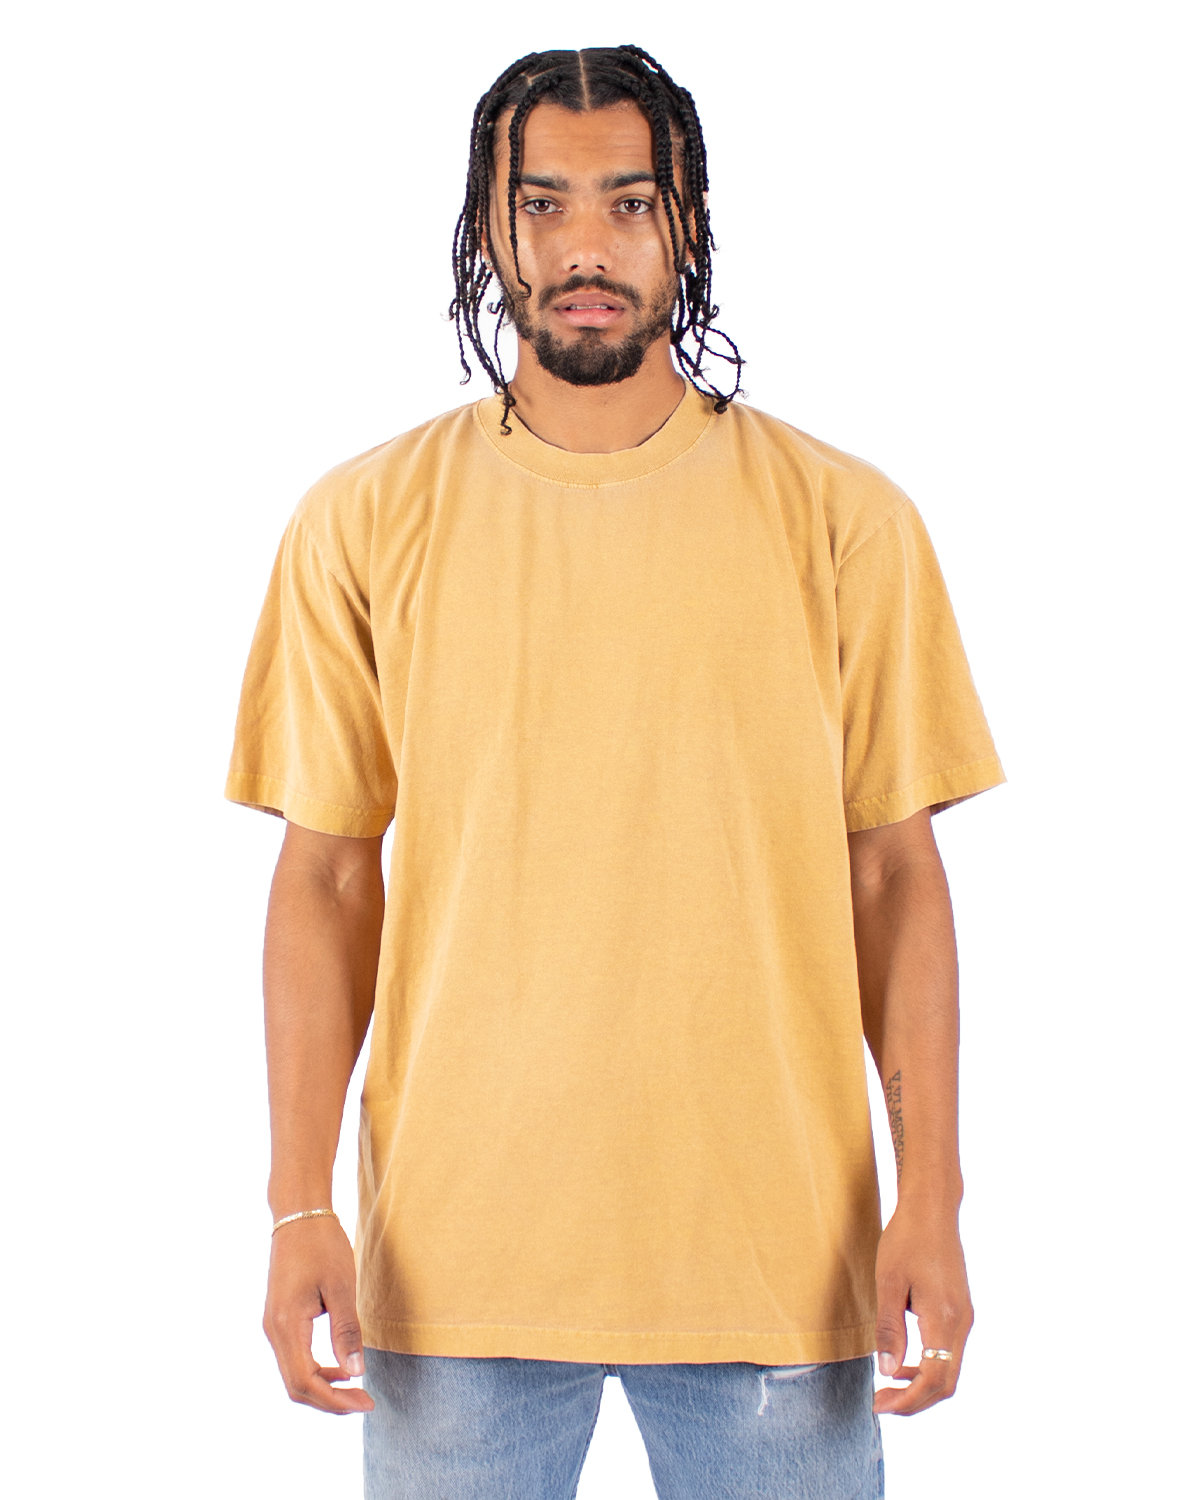 Shaka Wear Drop Ship Garment-Dyed Crewneck T-Shirt MUSTARD